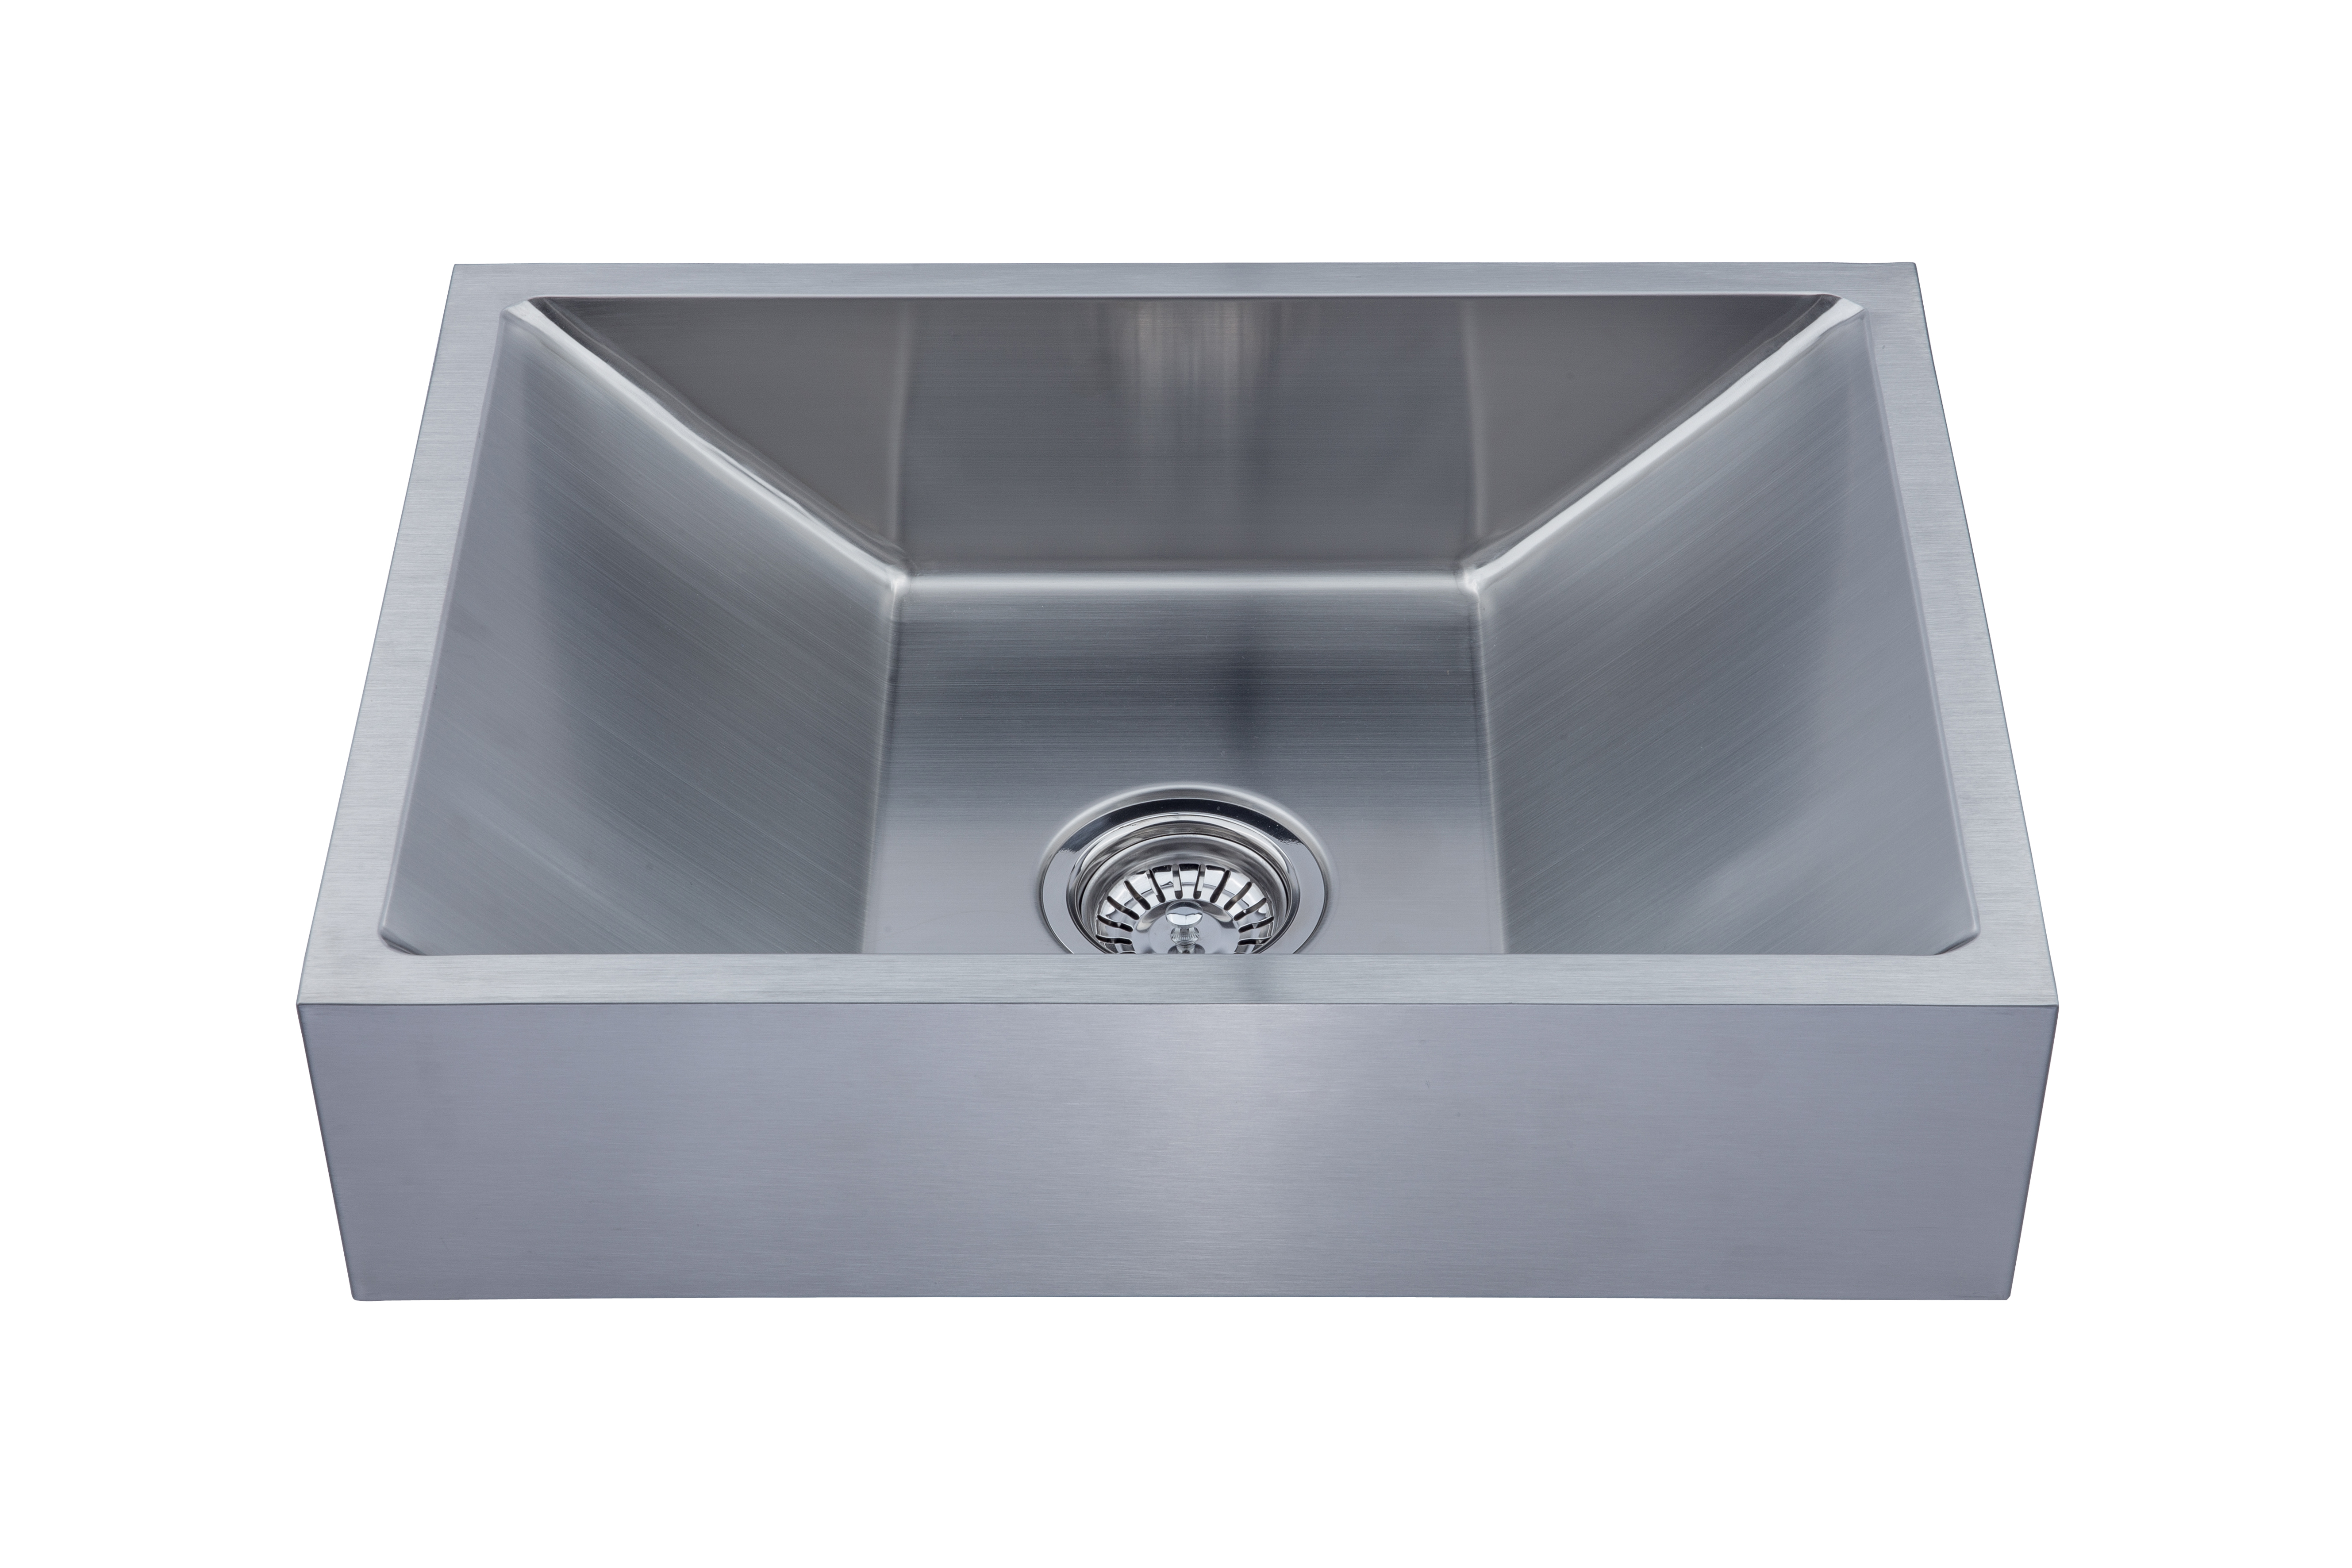 As356 23 75 X 17 25 6 18g Single Bowl Vessel Legend Stainless Steel Bathroom Sink